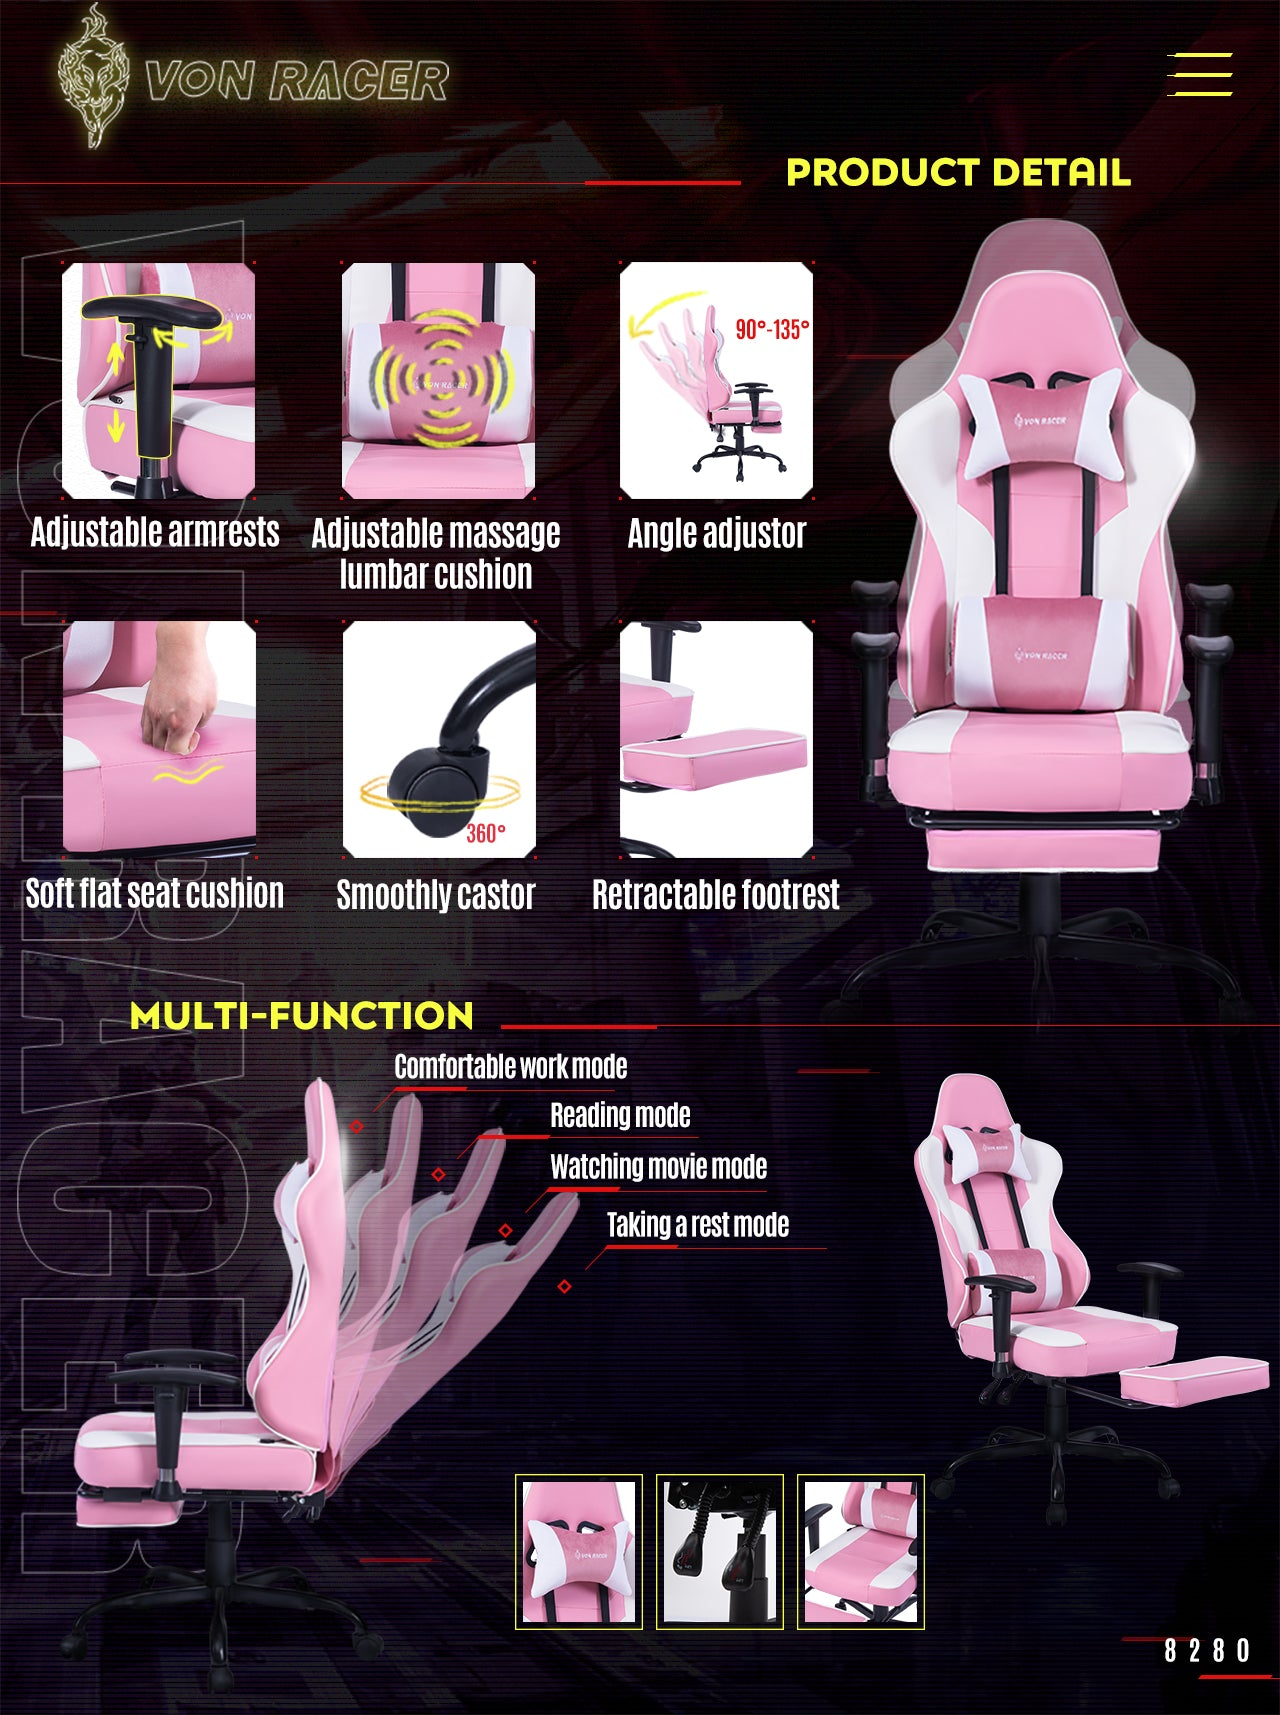 VON RACER ERGONOMIC GAMING CHAIR 8280 PINK FEATURES